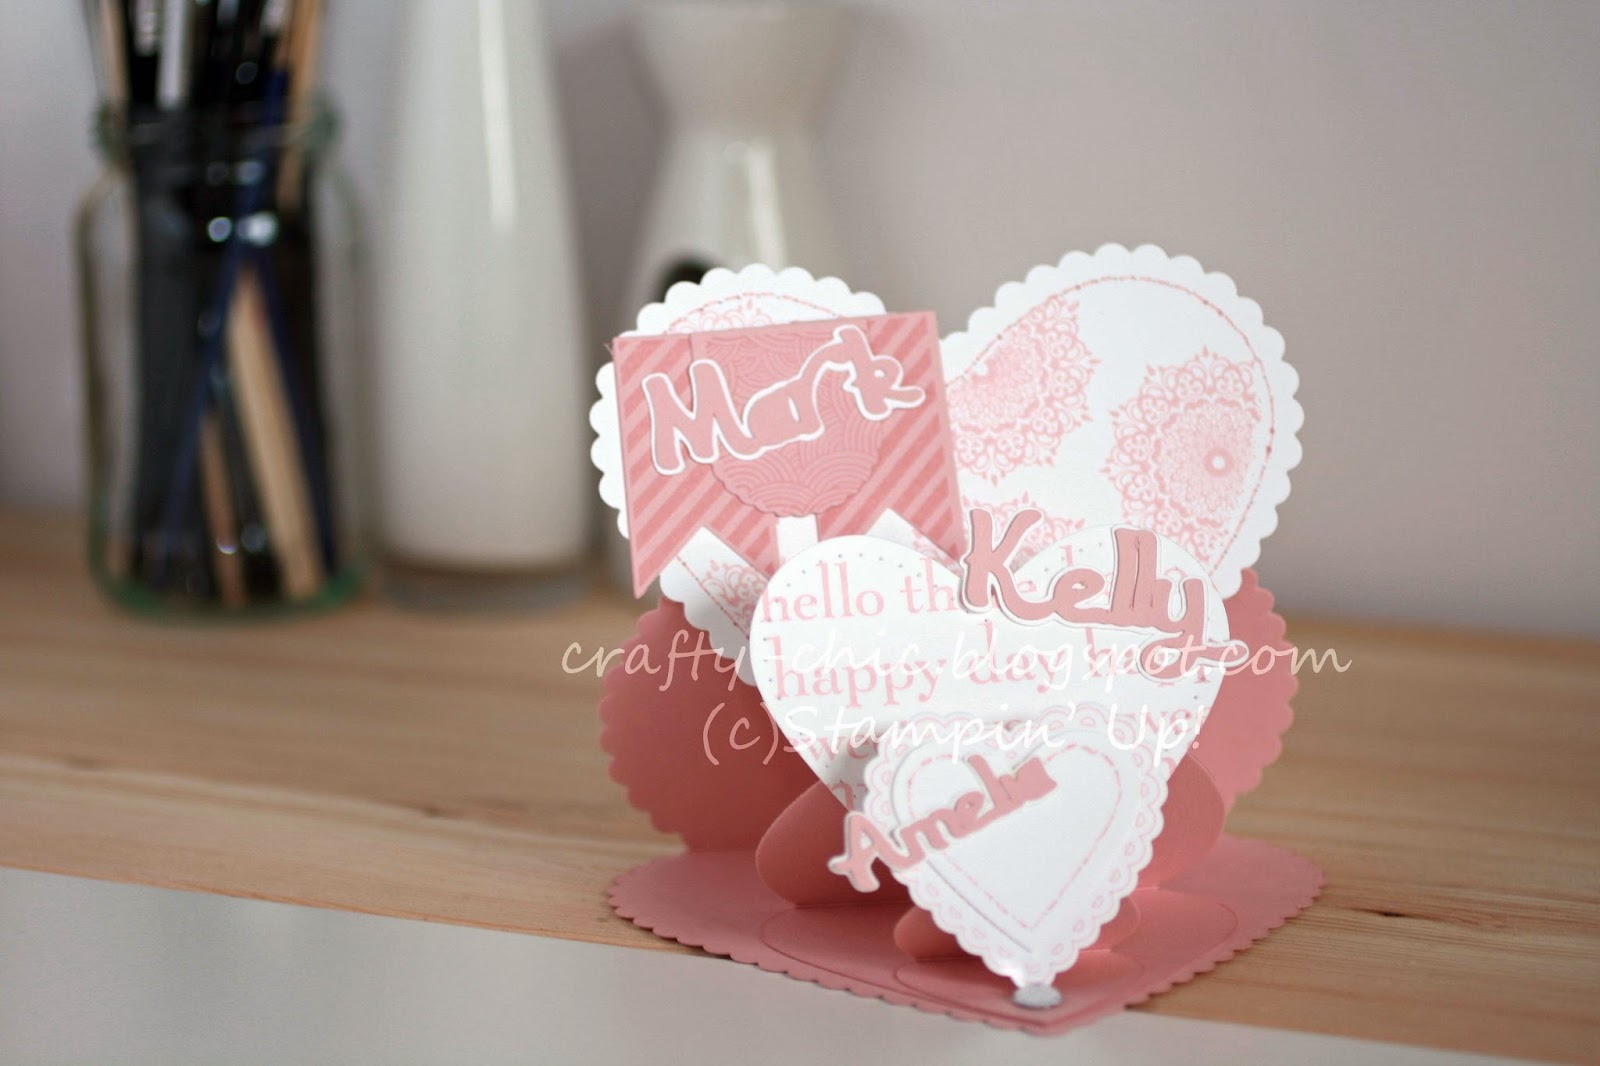 A triple easel card made from the Stampin' Up heart framelits